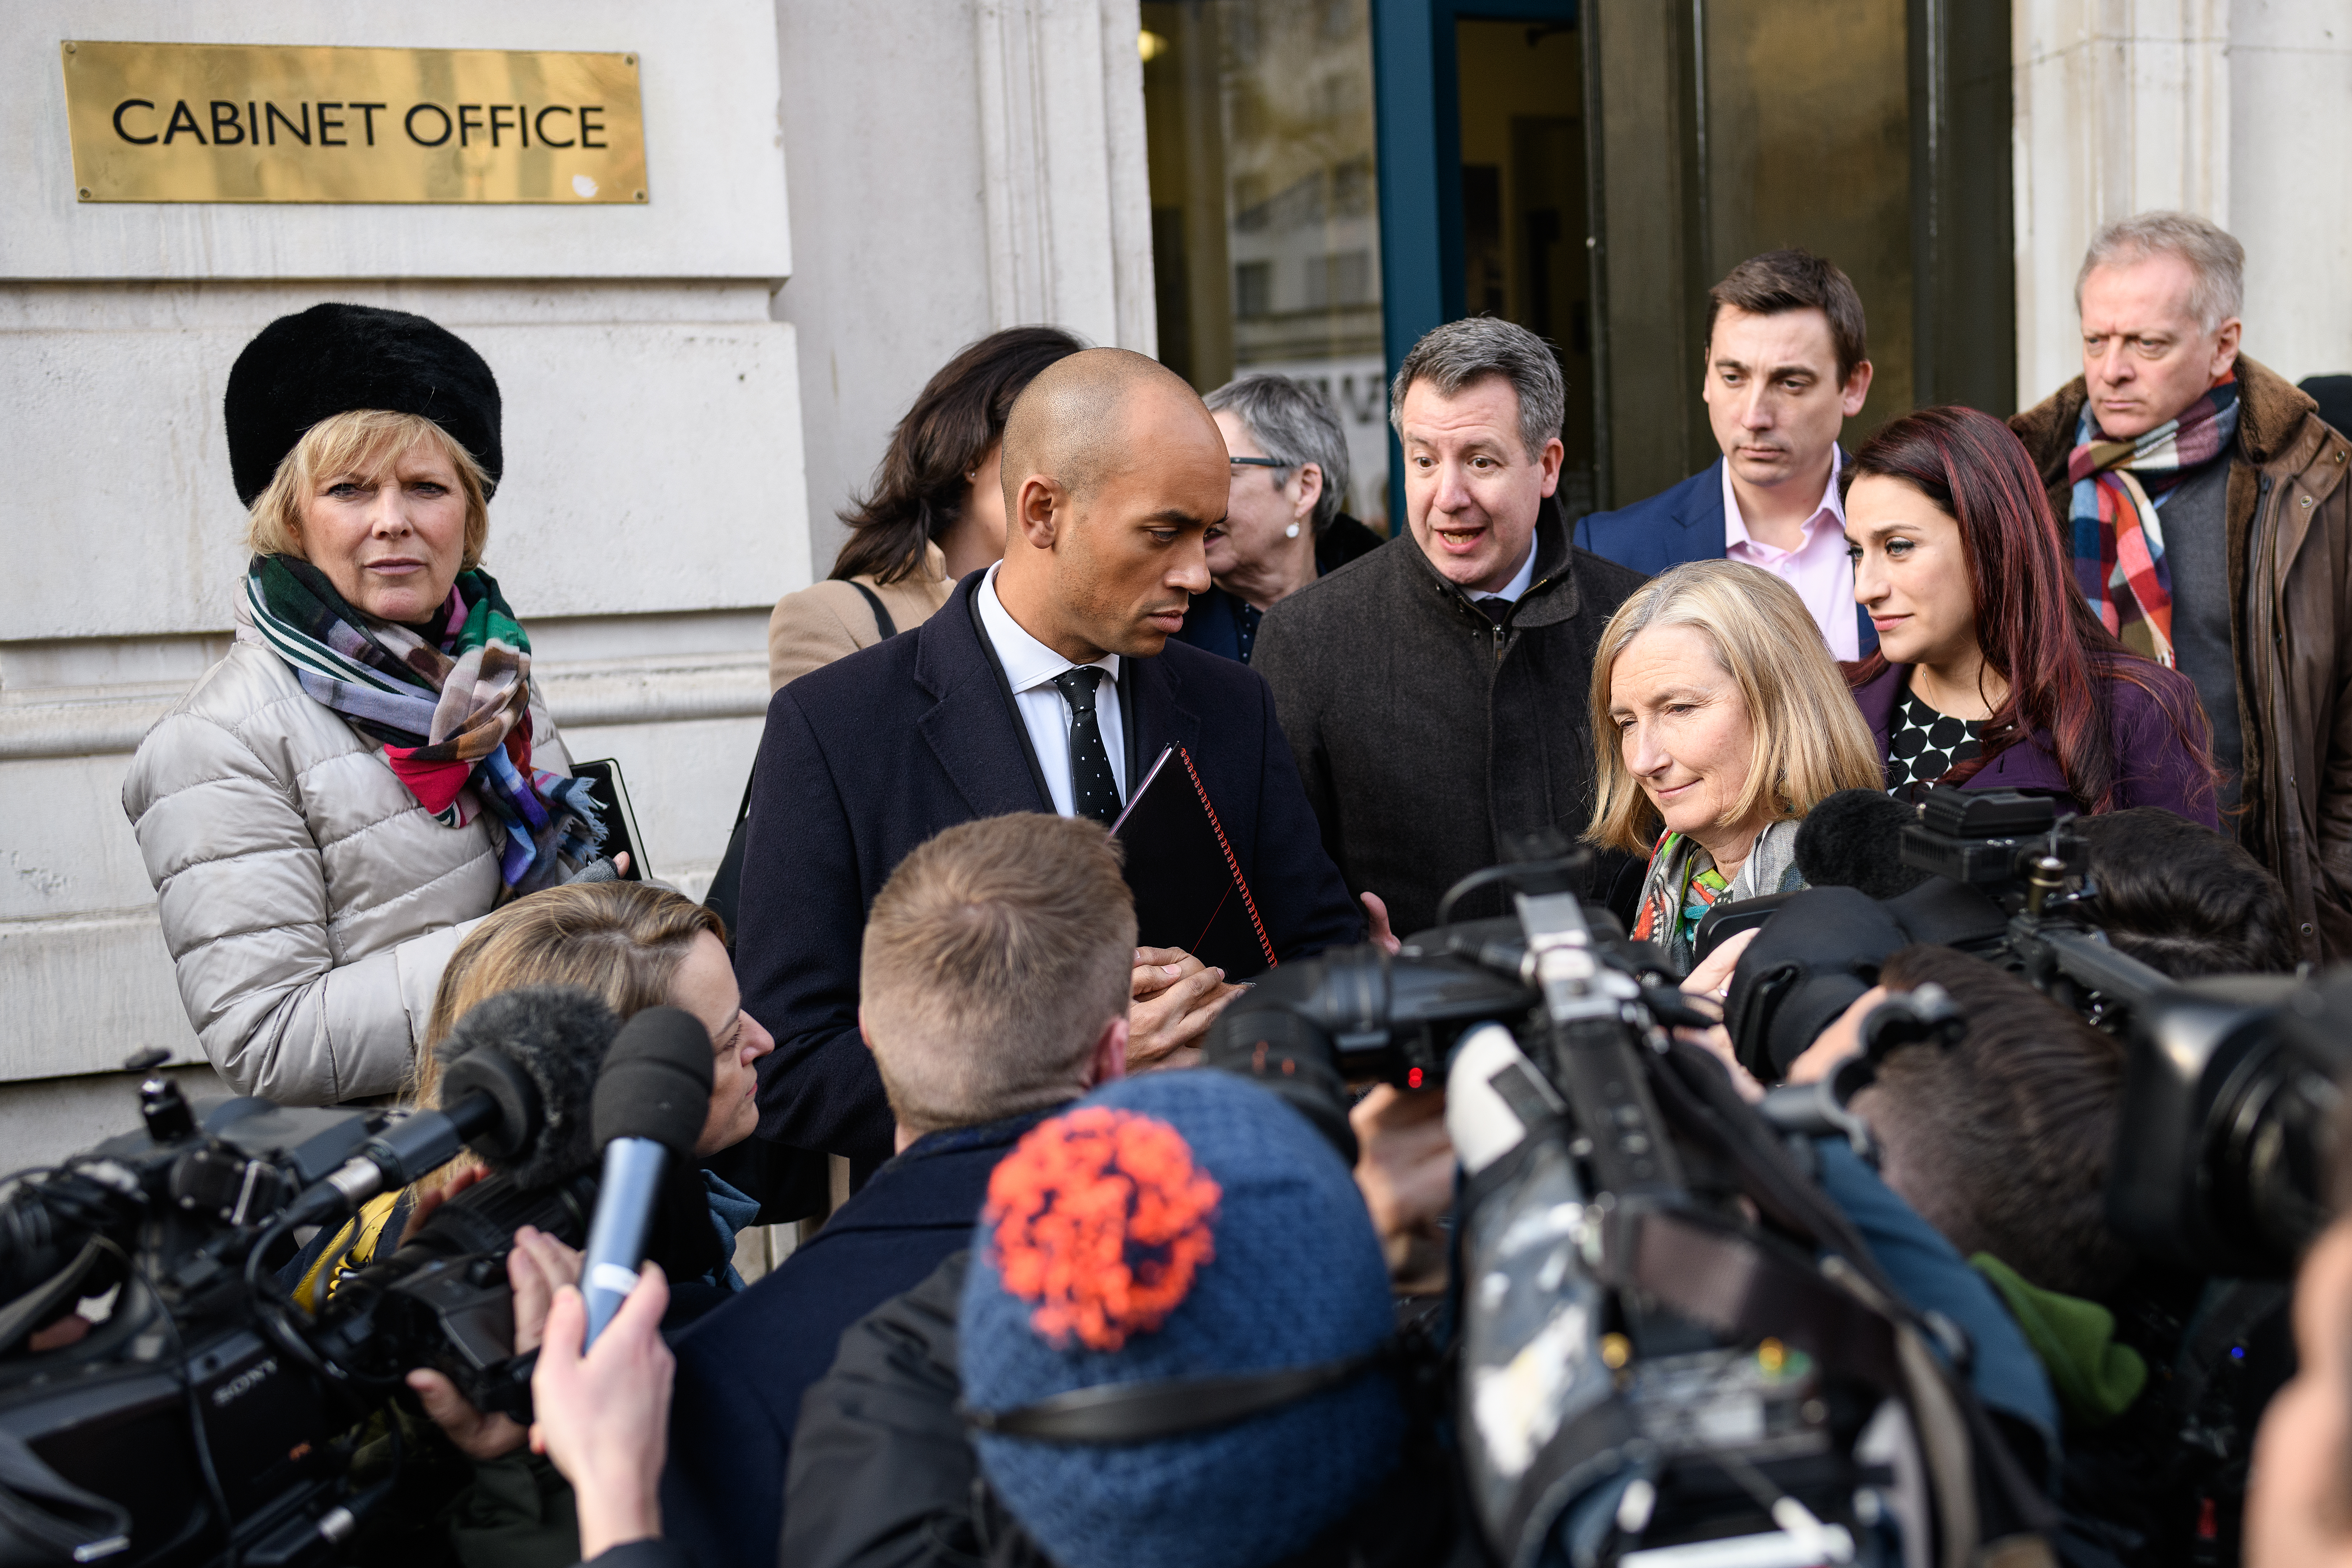 """LONDON, ENGLAND - JANUARY 21: Conservative MP Anna Soubry (L), Labour MP Chuka Umunna (2L), Labour MP Chris Leslie (3L), Conservative MP Sarah Wollaston (3R), Labour MP Gavin Shuker (3R), Labour MP Luciana Berger (2R) and Conservative MP Phillip Lee (R) speak with the media outside the Cabinet Office following a Brexit meeting with Theresa May's Chief of Staff Gavin Barwell and David Liddington MP on January 21, 2019 in London, England. British Prime Minister Theresa May is set to attempt to convince Conservative Brexiteers and DUP MPs to back her current withdrawal deal by resolving Irish backstop concerns. Her attempts to reach a cross-party agreement last week were thwarted after the Labour Party leader Jeremy Corbyn insisted on the removal of leaving the European Union with """"no deal"""" as an option in the negotations on how to proceed with Brexit, before he would talk to the Government. (Photo by Leon Neal/Getty Images)"""